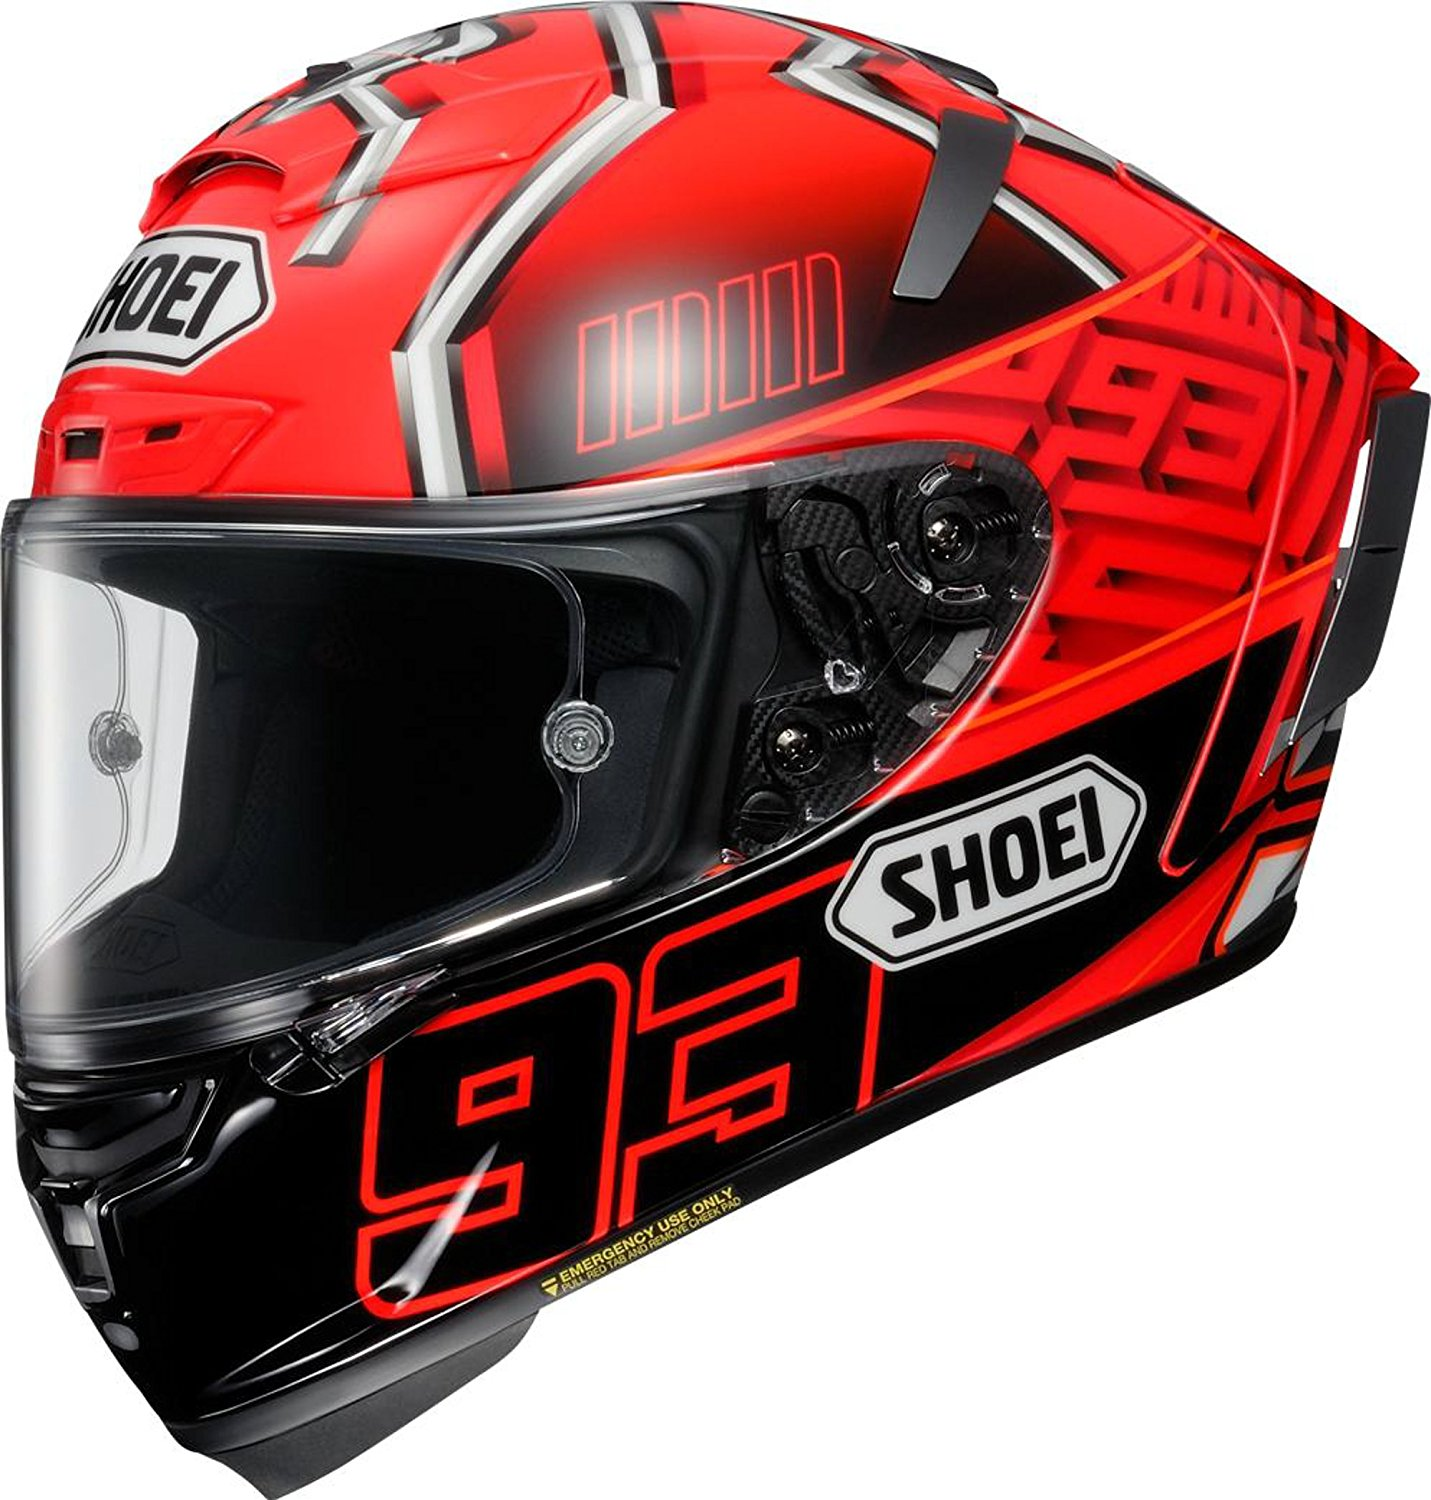 SHOEI X-Fourteen MARQUEZ4  TC-1 全覆式头盔 红蚂蚁 XL